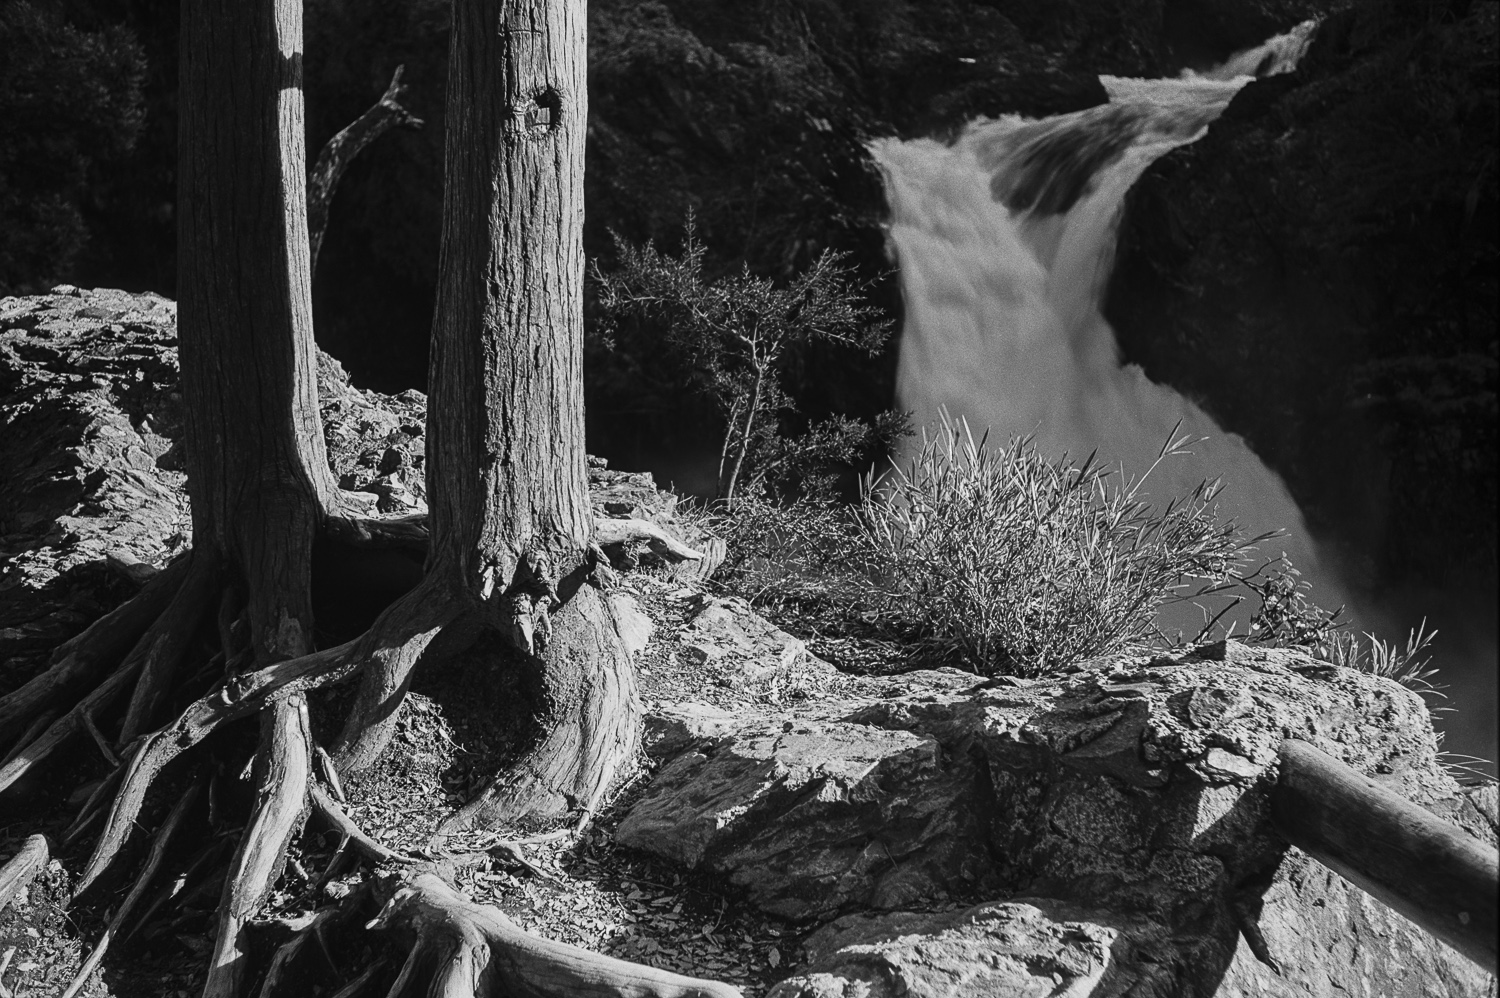 Waterfall and treetrunks, Bariloche - 1976